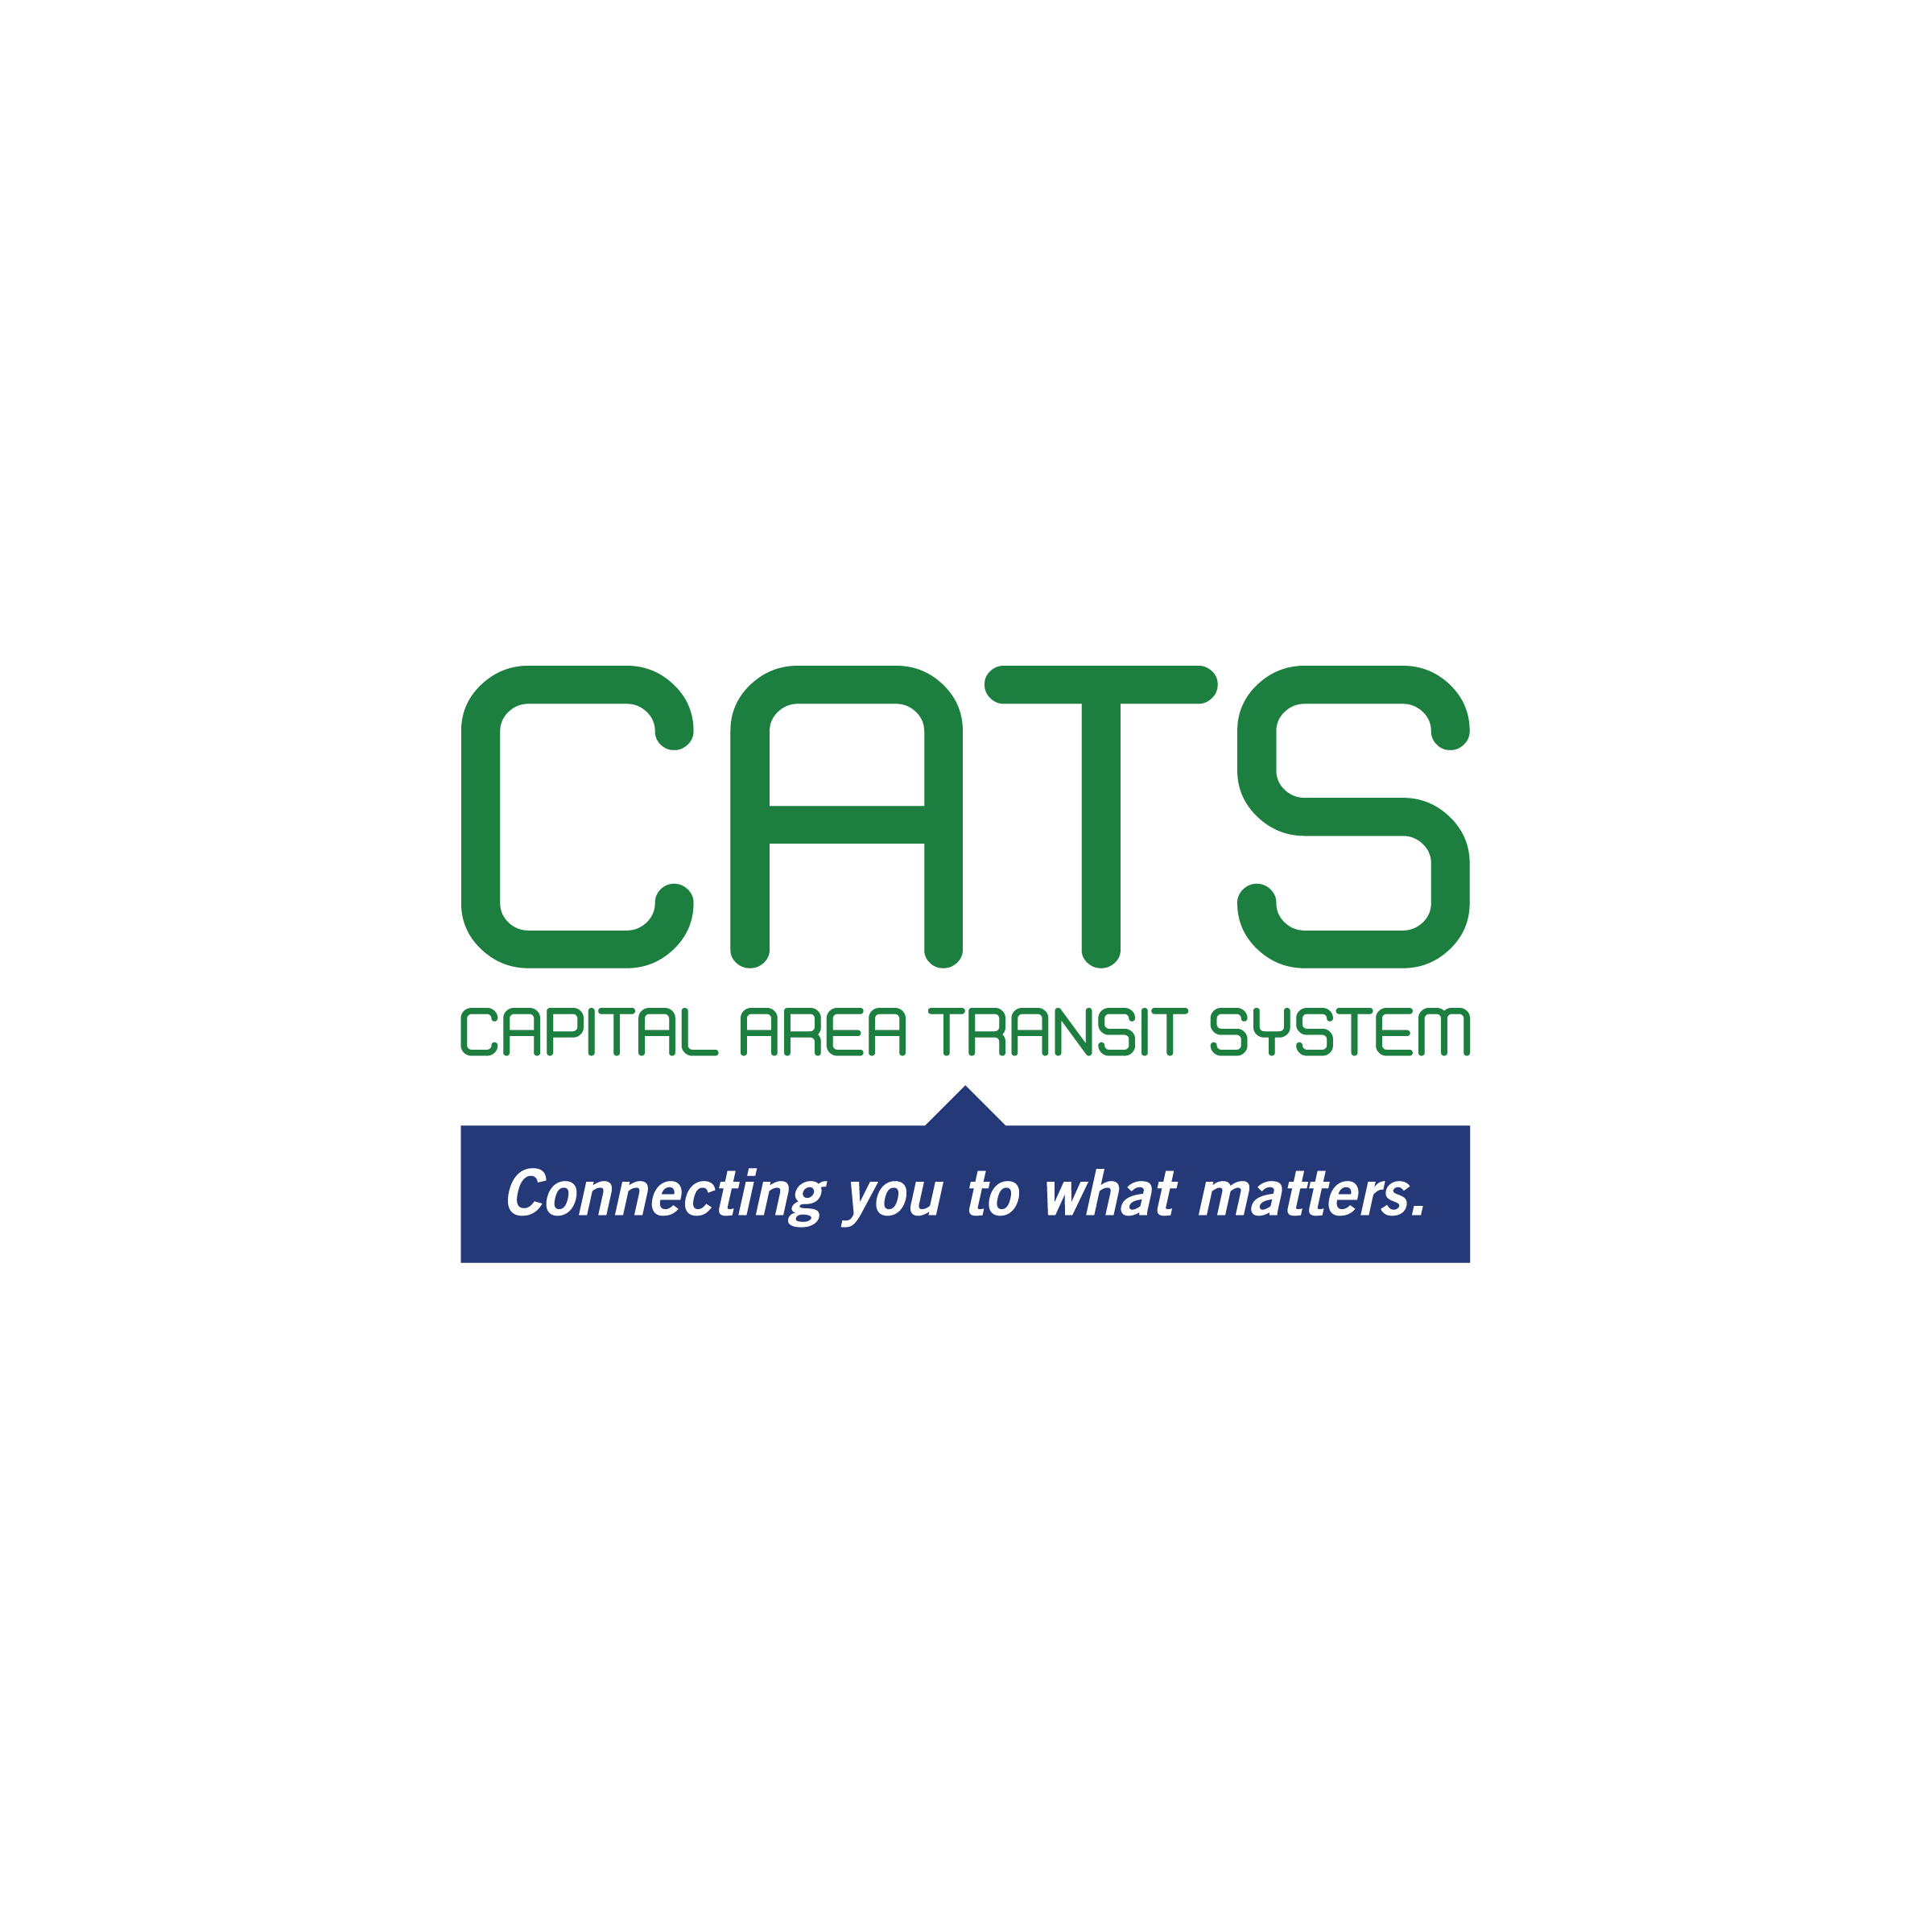 Capital Area Transit System (CATS) Logo